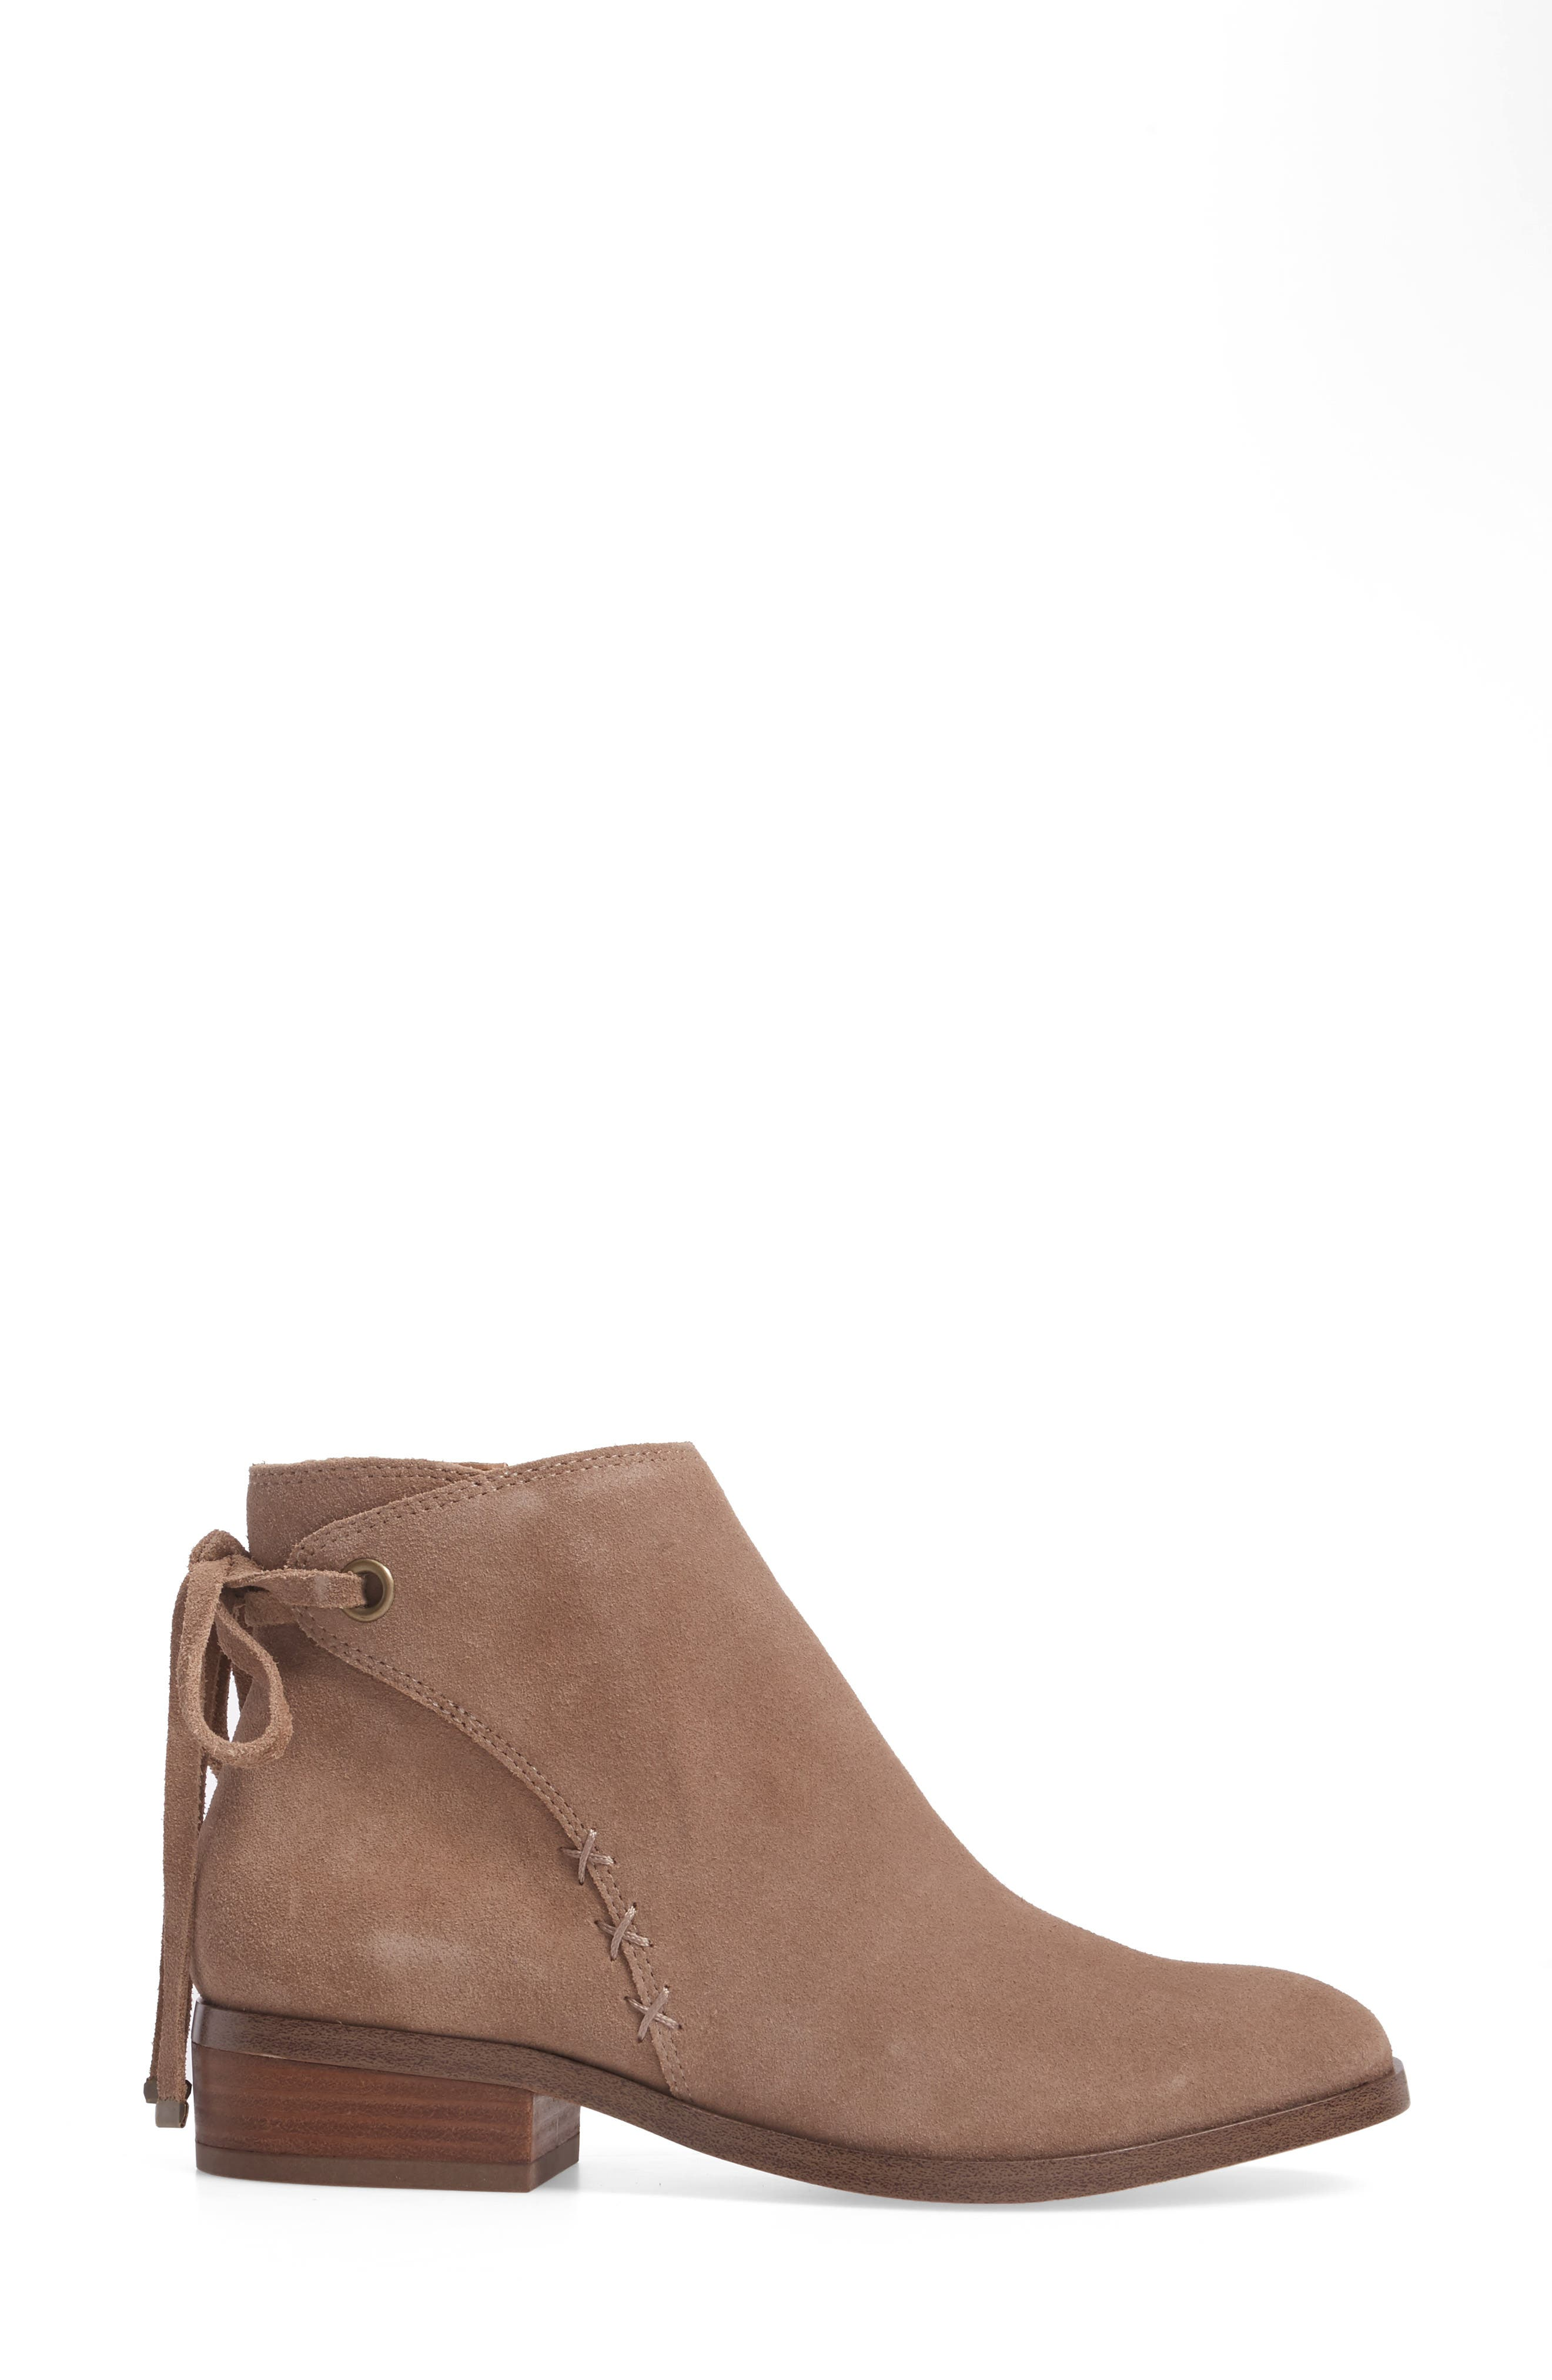 Lachlan Tie Back Bootie,                             Alternate thumbnail 3, color,                             Taupe